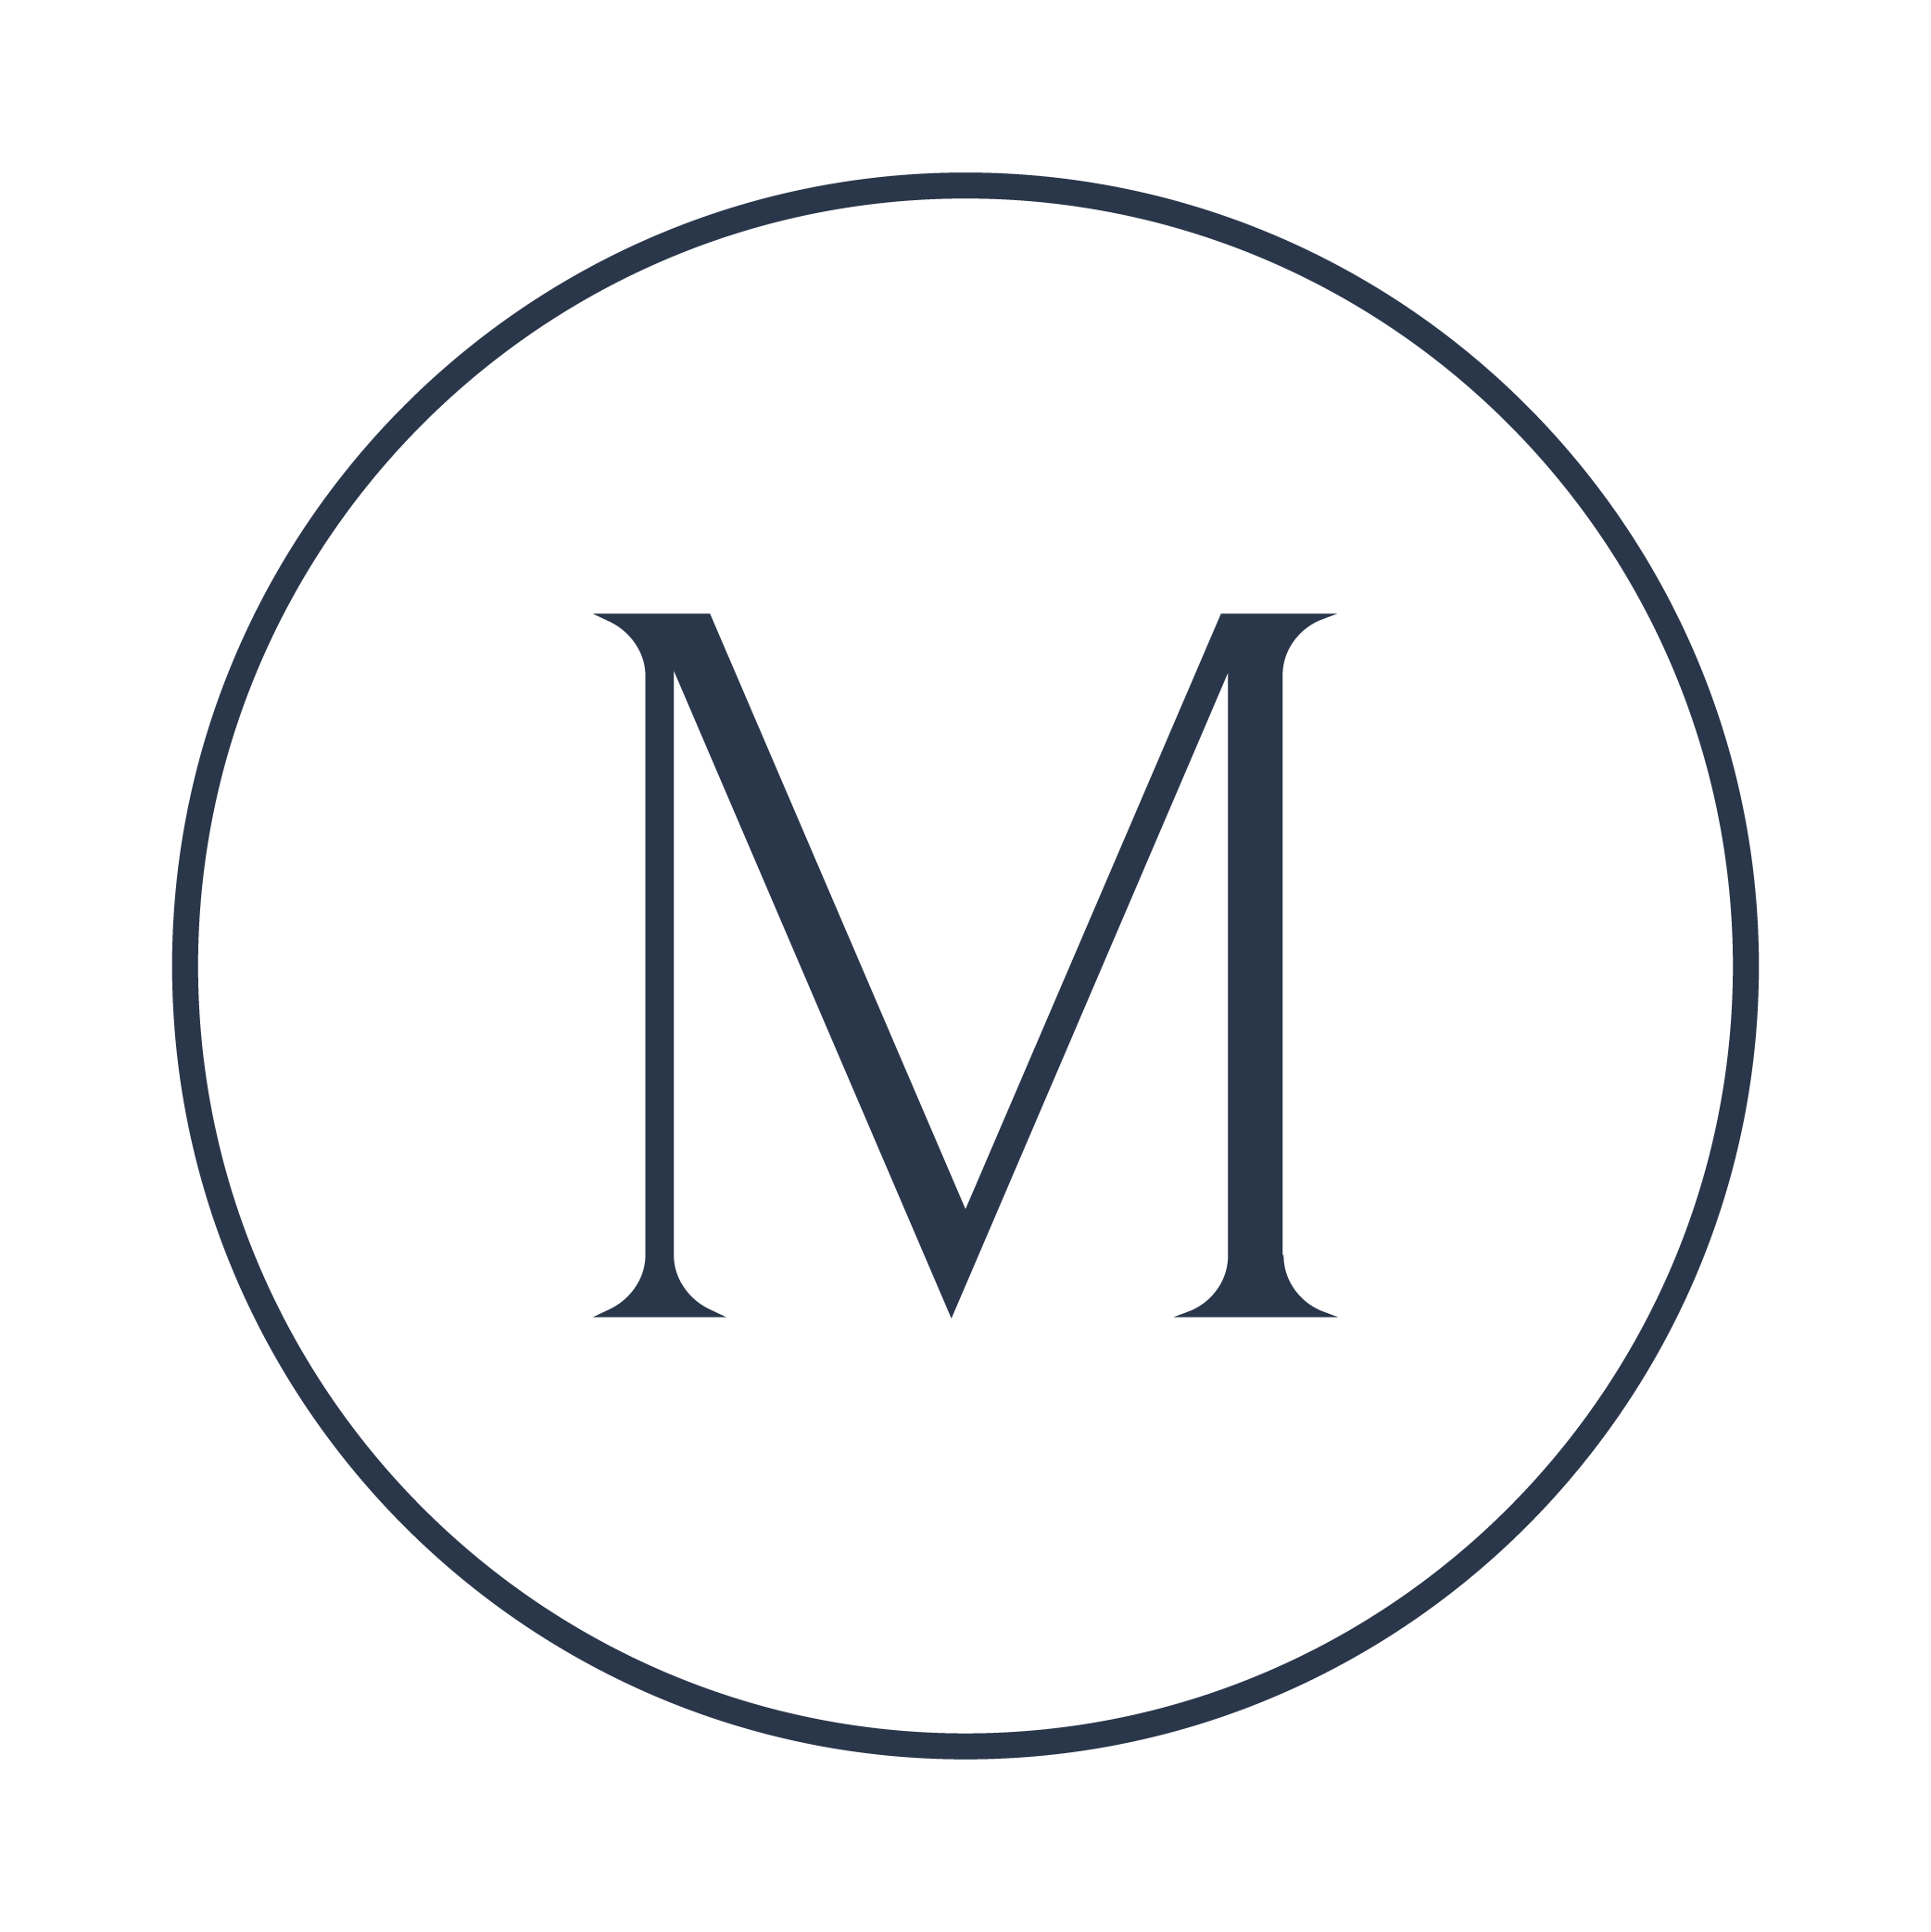 MD-Logos_circle_navy_large.png